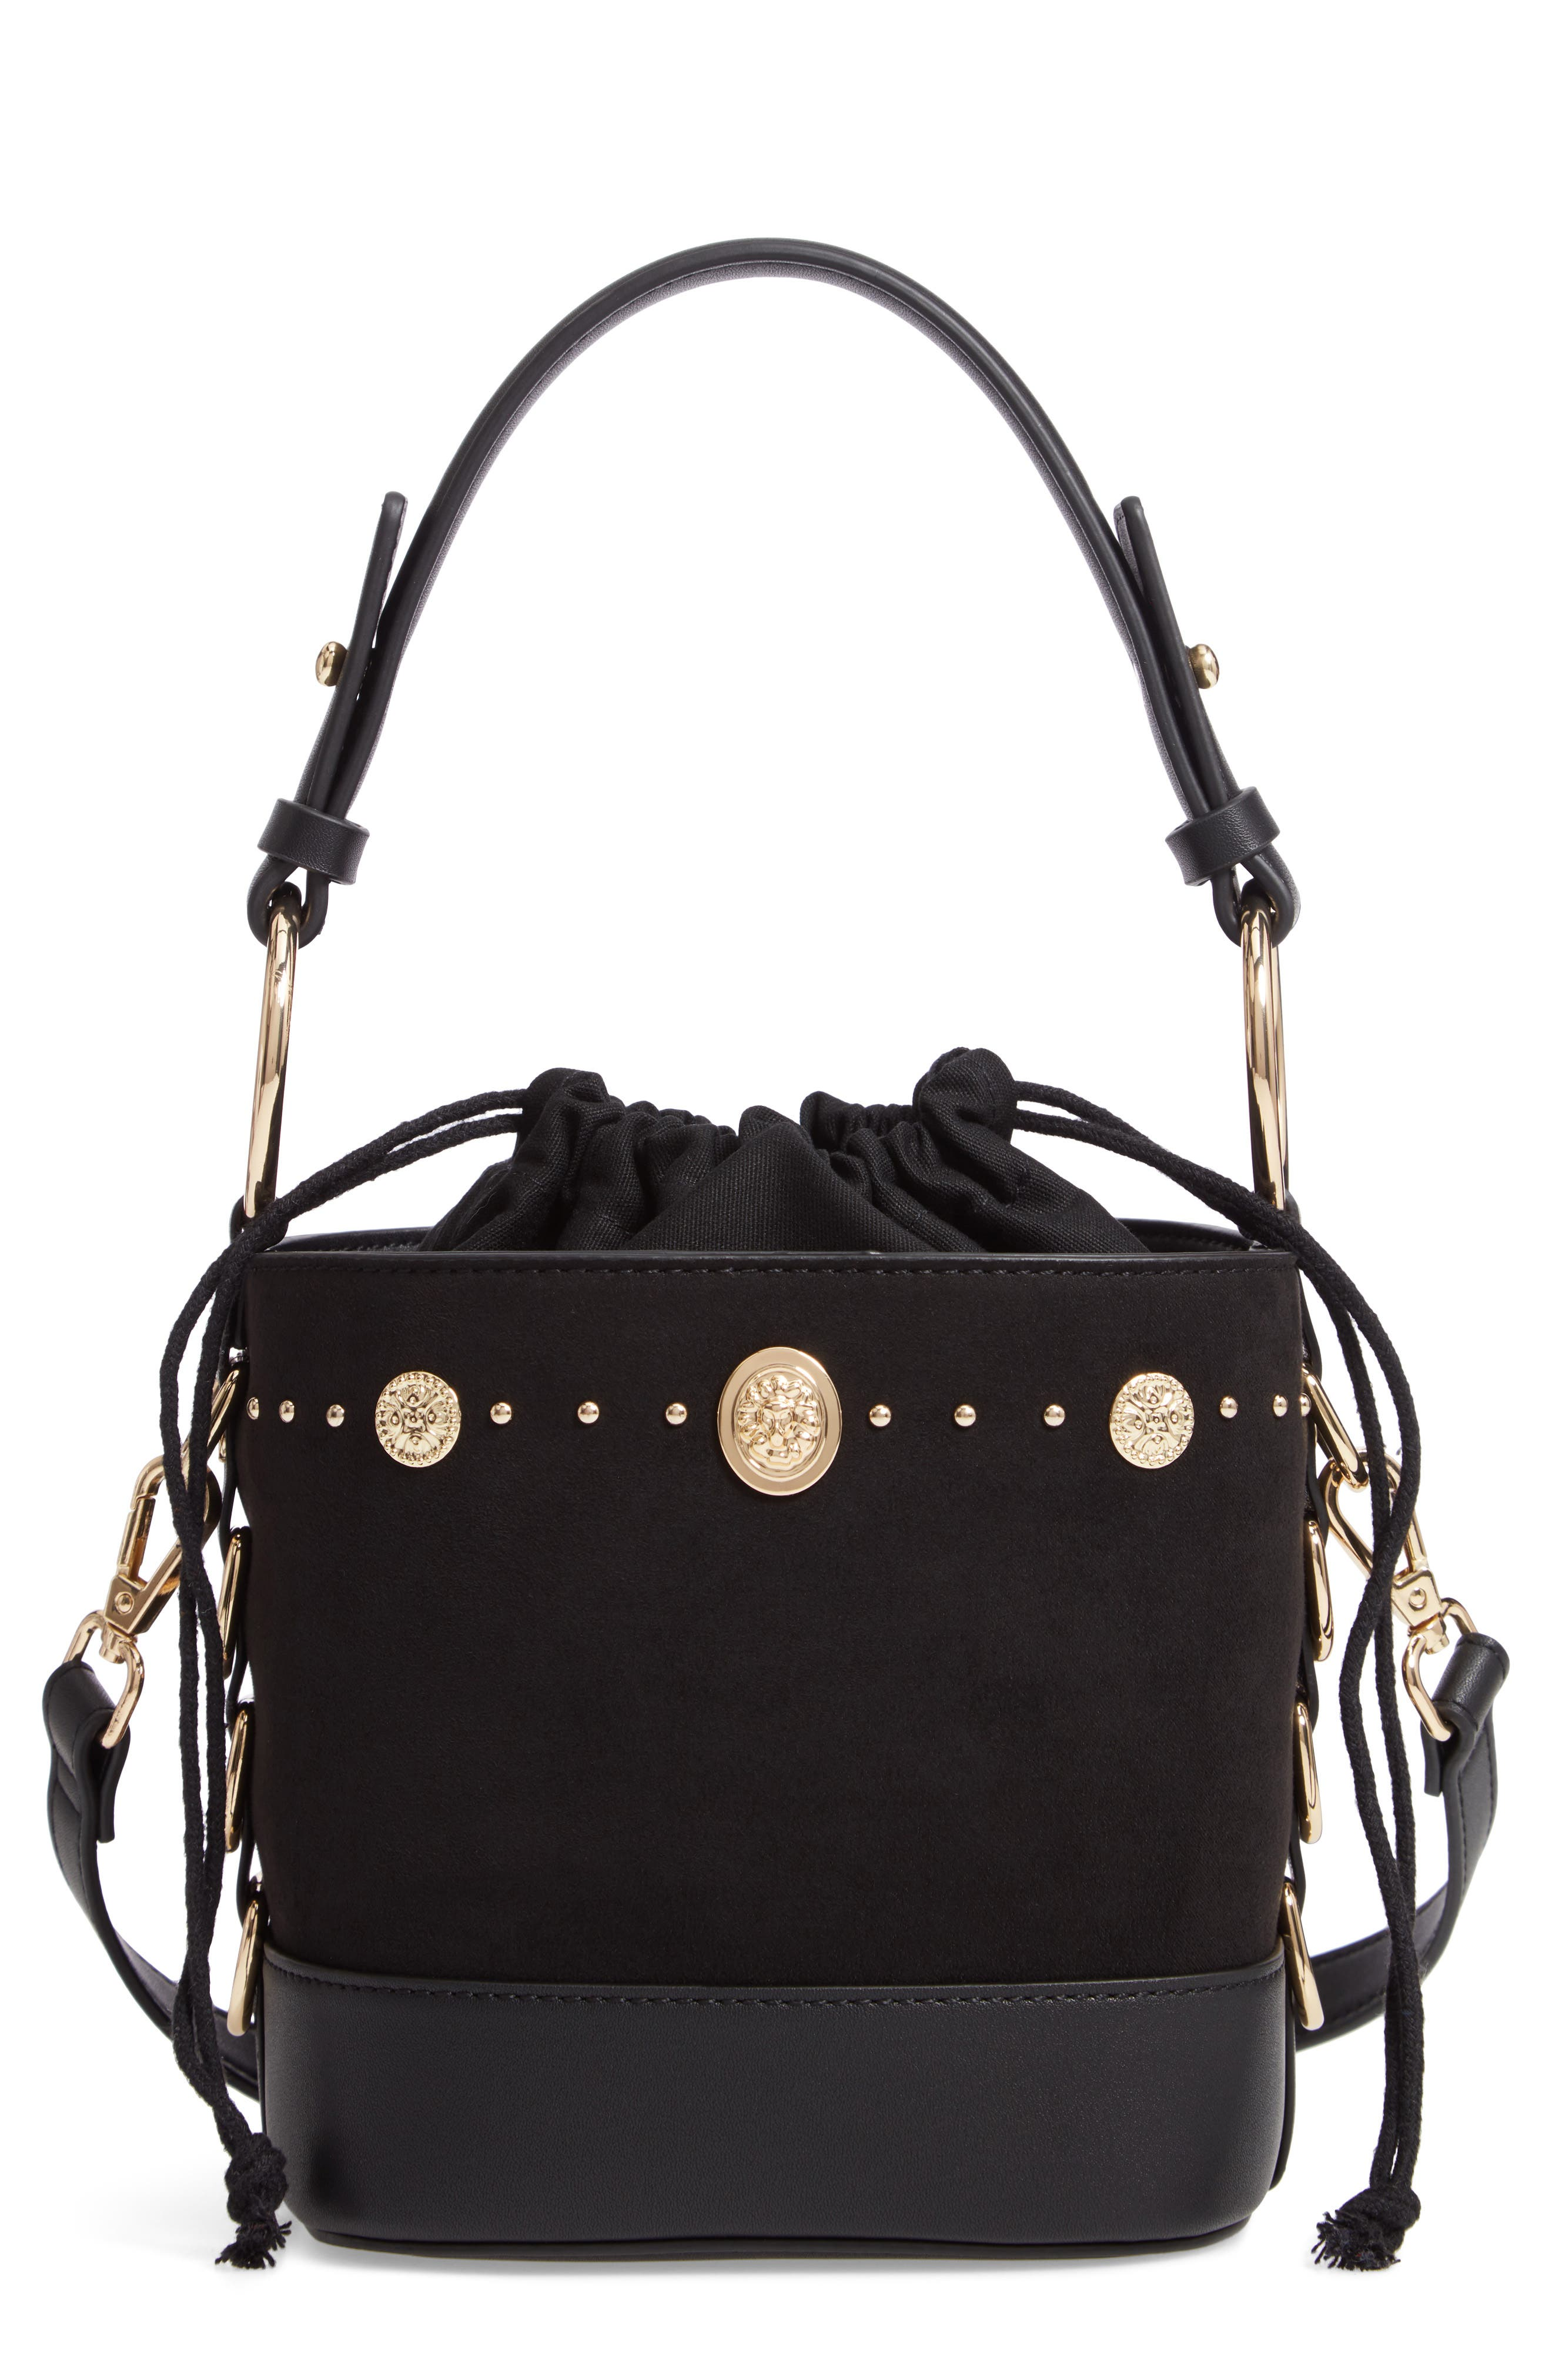 Bianca Studded Faux Leather Bucket Bag,                             Main thumbnail 1, color,                             BLACK MULTI